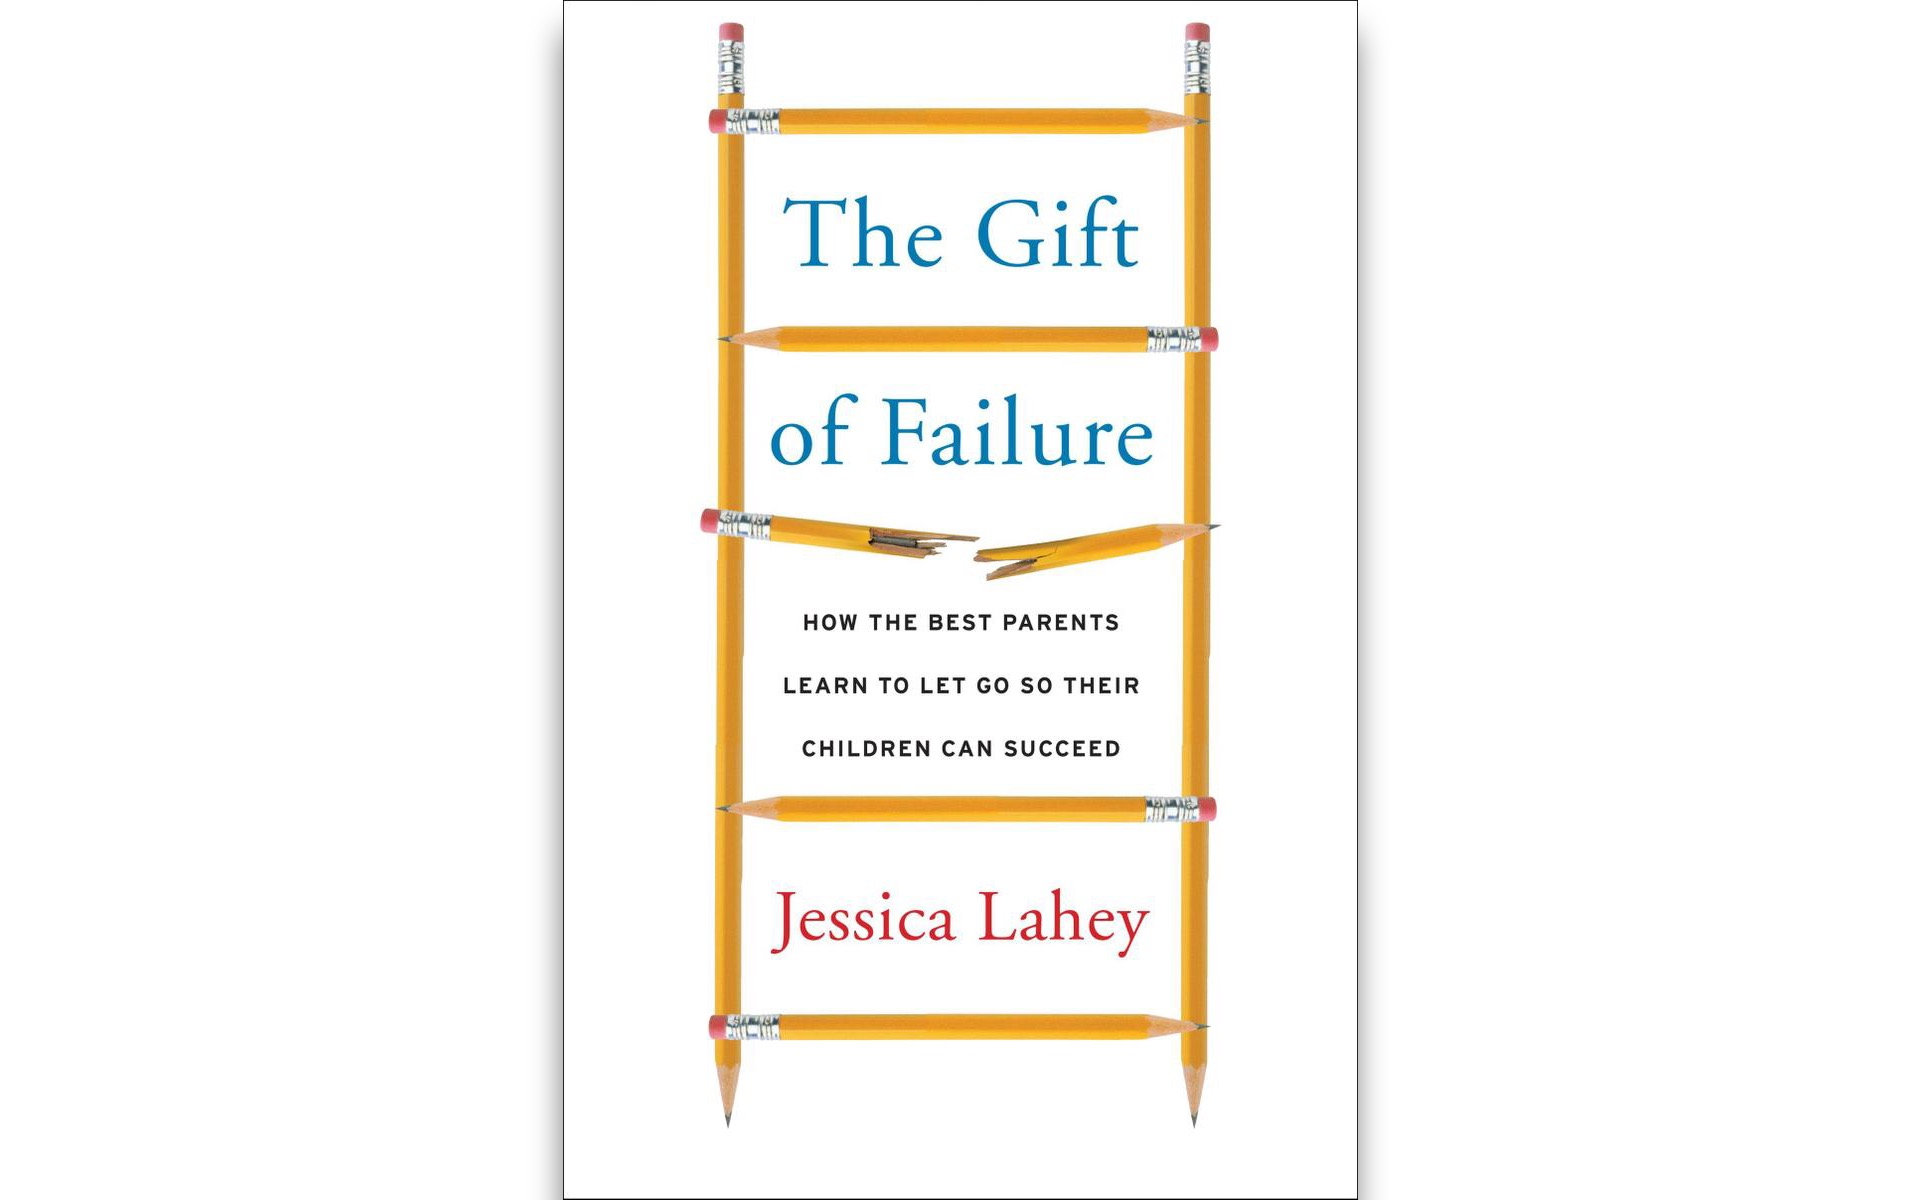 The Gift of Failure by Jessica Lahey.